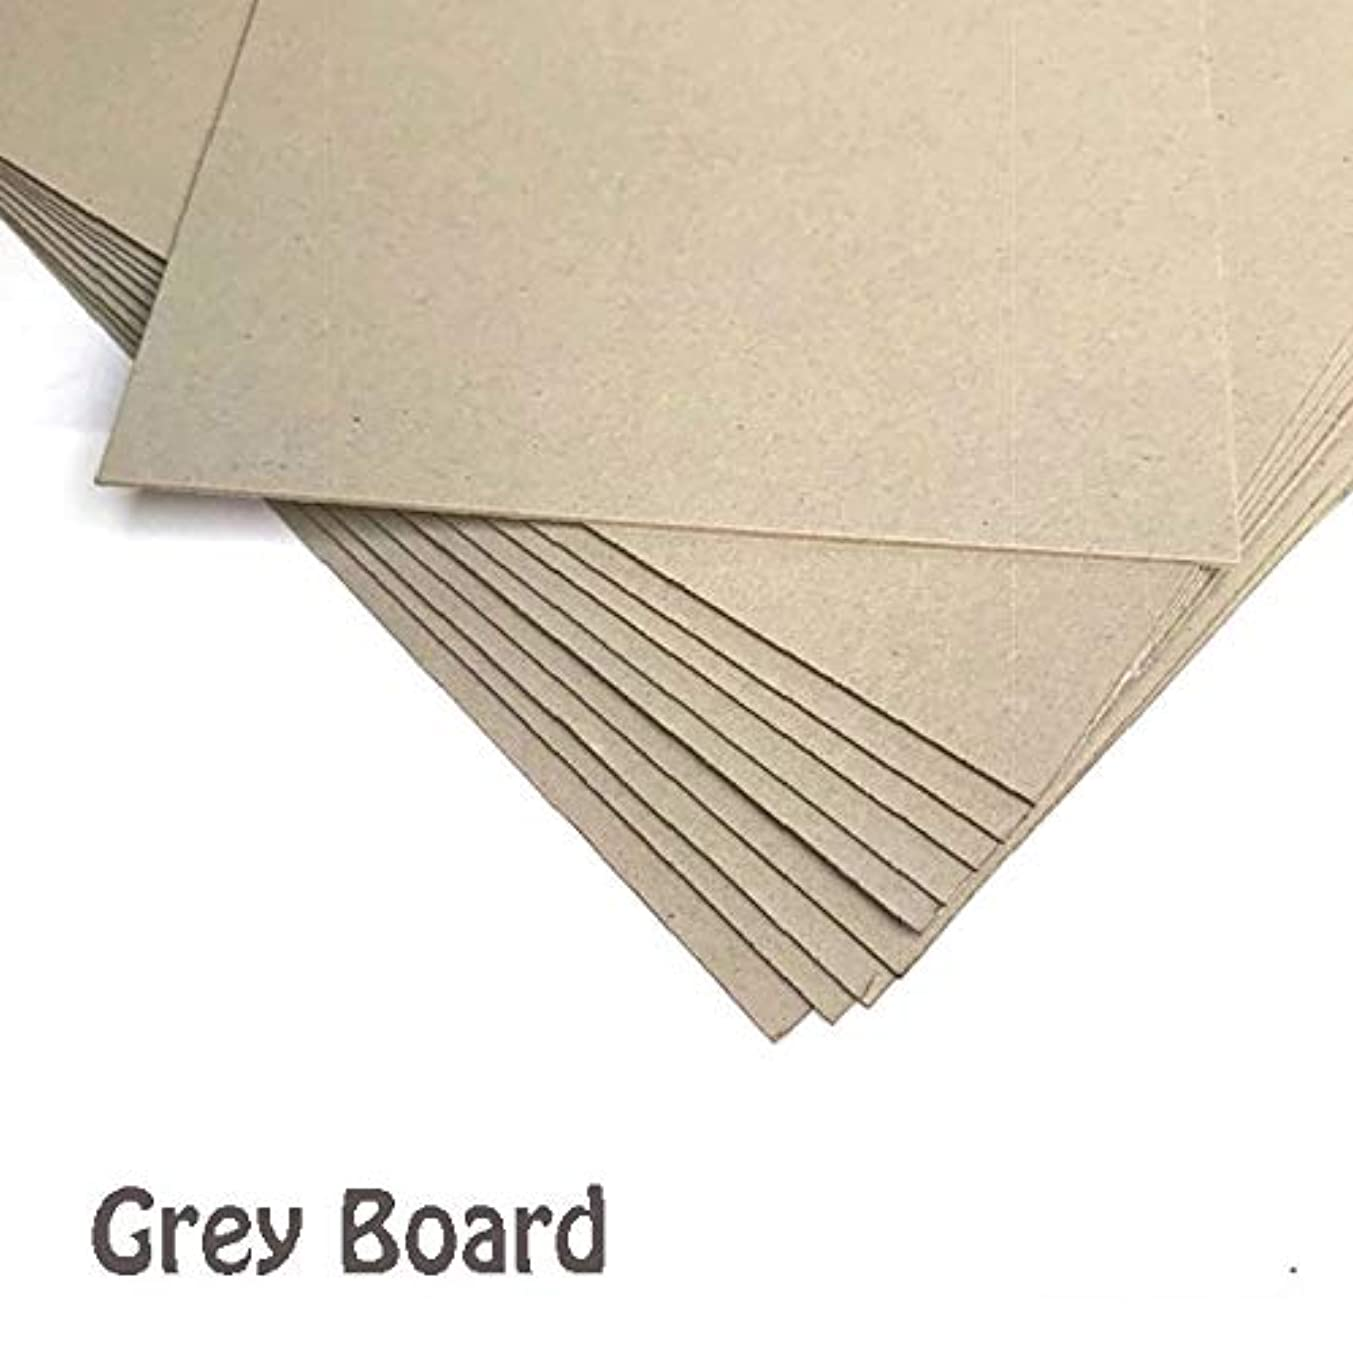 House of Card & Paper Grey Kraft Board 1500micron 945gsm A2 Size 5 sheets per pack